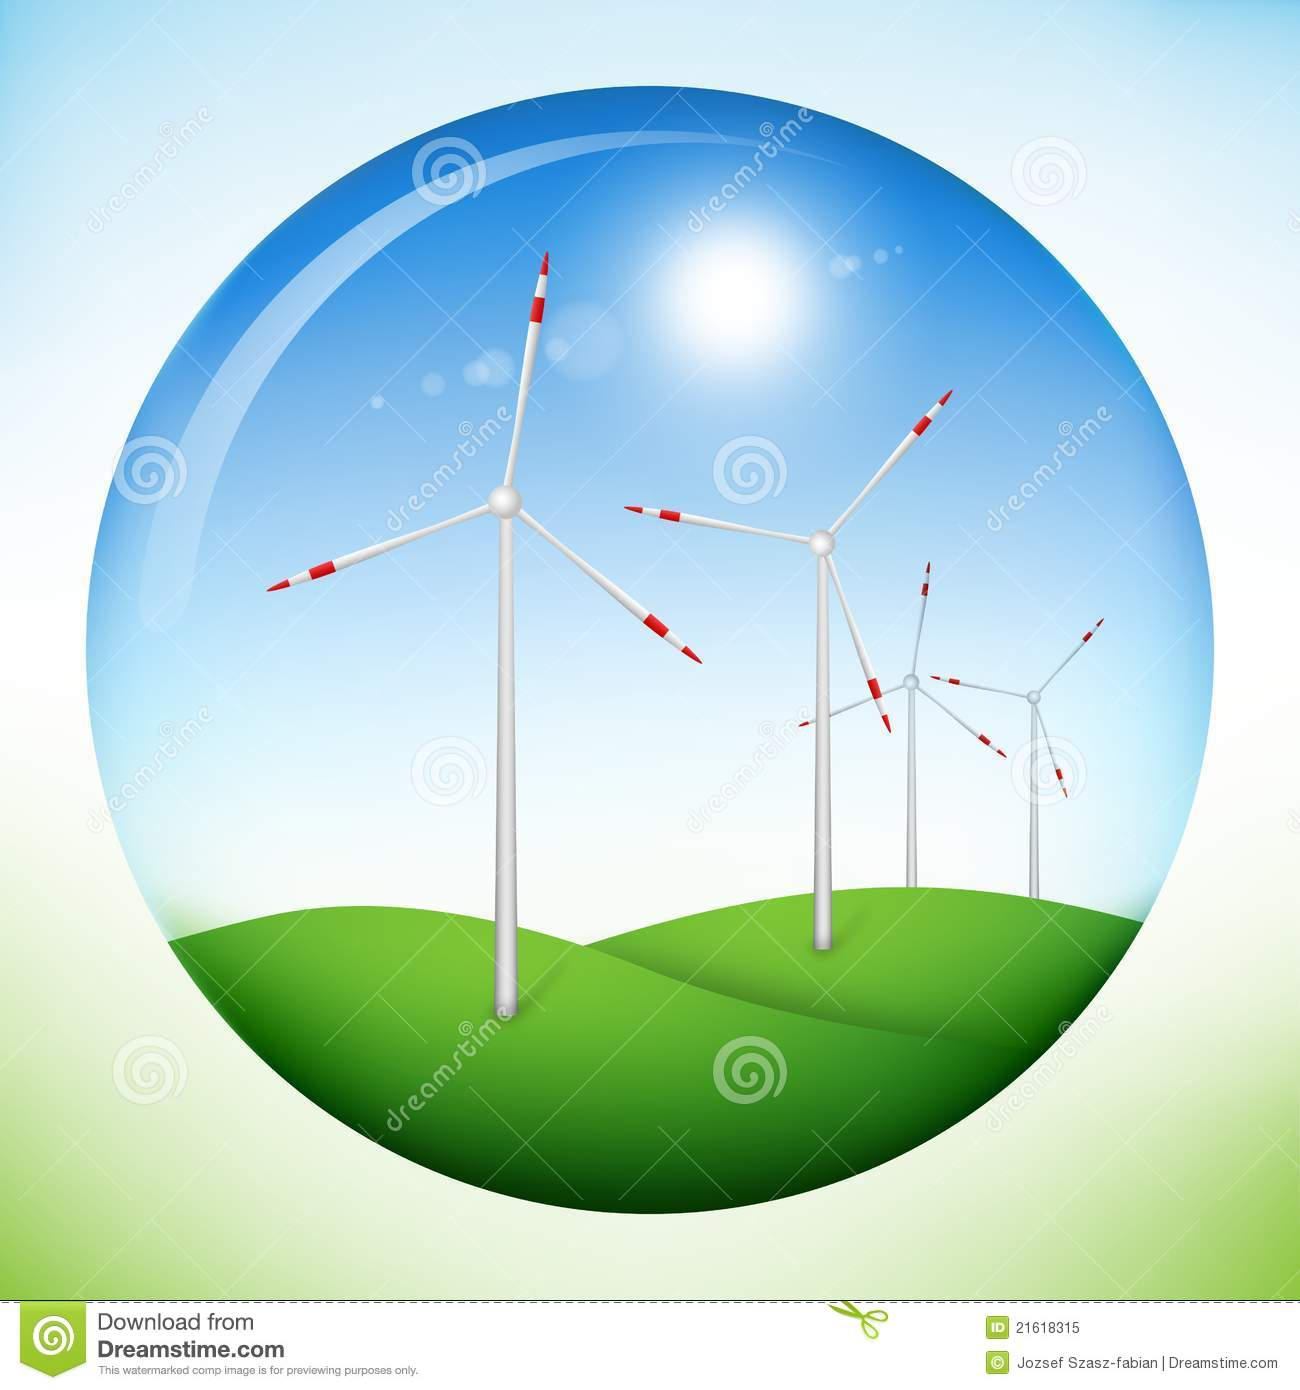 Wind Power Guide Free Energy Generator Plans Download Onan Generators Fordificationcom Of A Sphere With Land Sky Sun And Windmill Inside